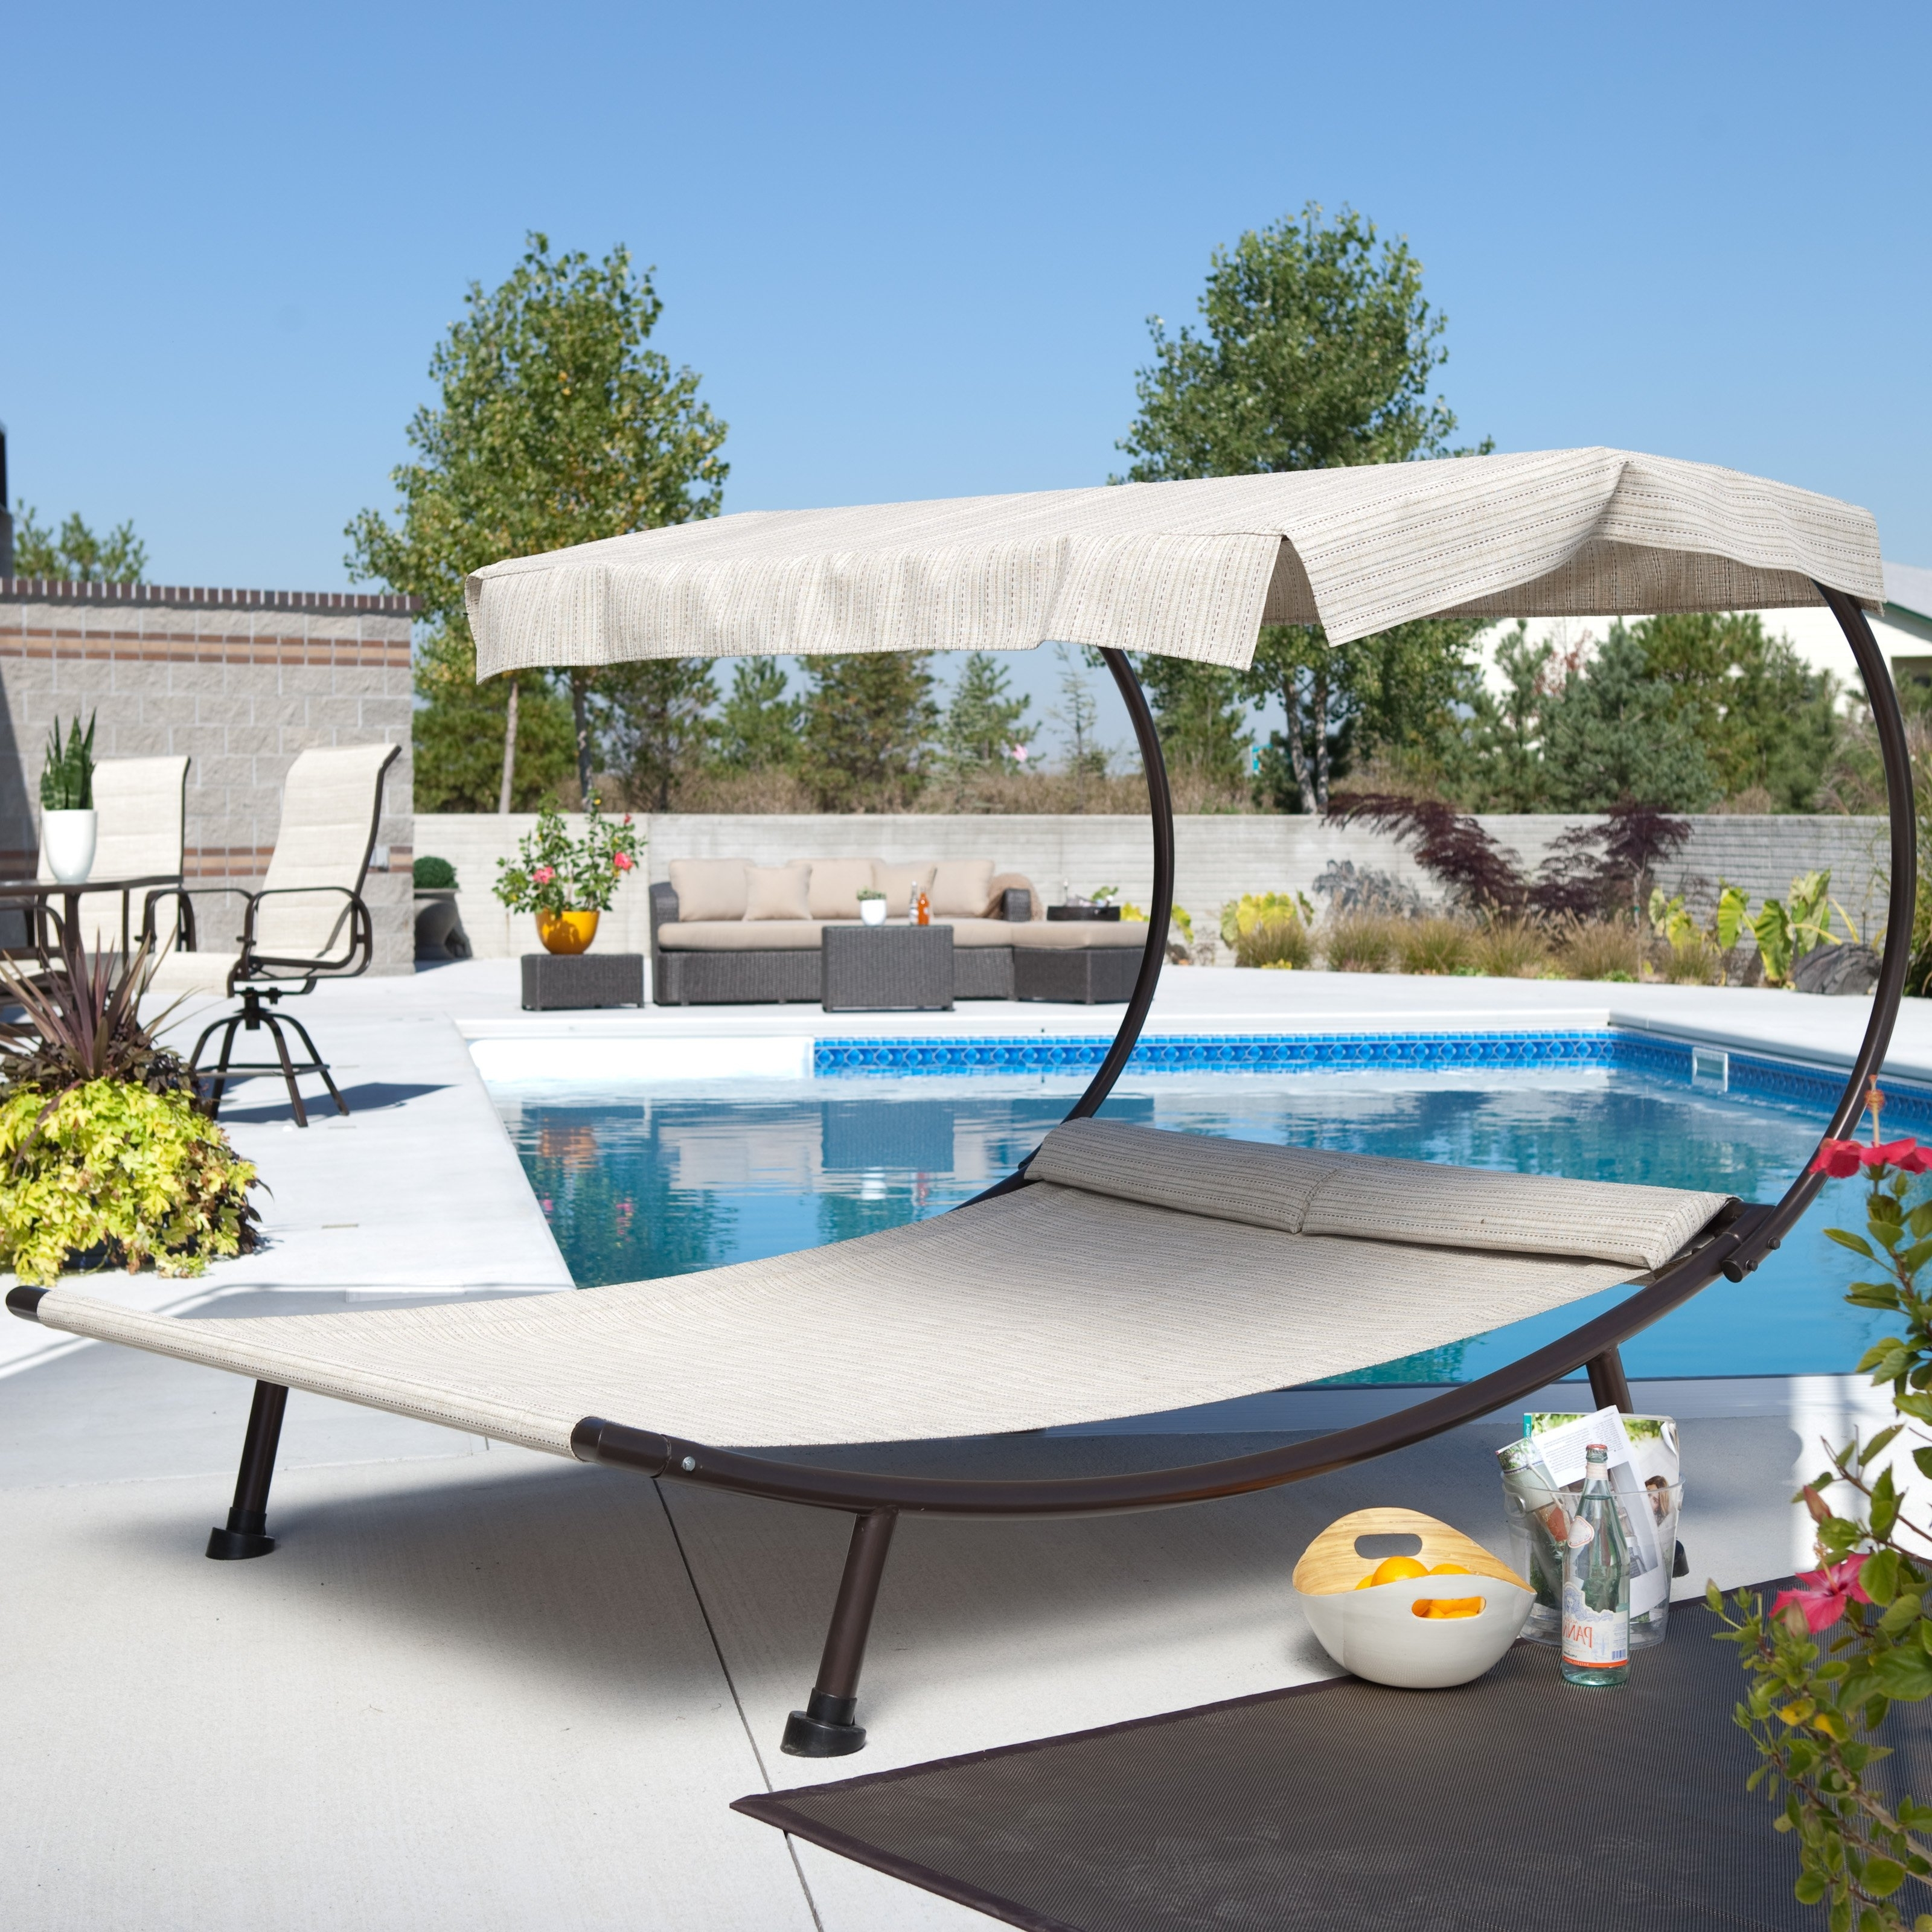 Hayneedle Regarding Latest Chaise Lounge Chair With Canopy (View 7 of 15)